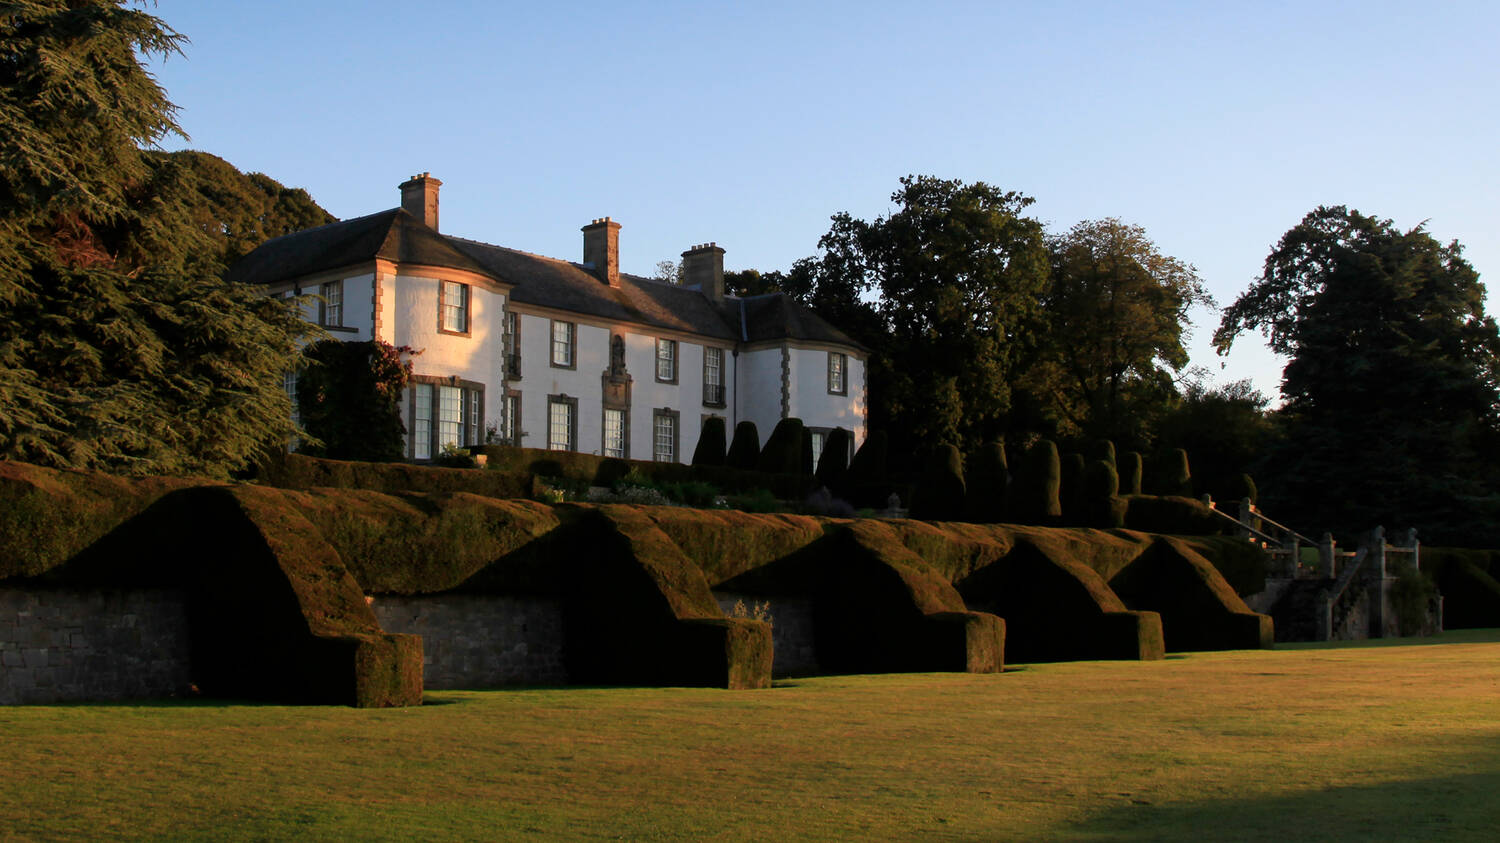 Hill of Tarvit seen from the lawns below on a sunny day. Manicured yew hedges define the terraces leading up to the house, which is surrounded by tall trees.